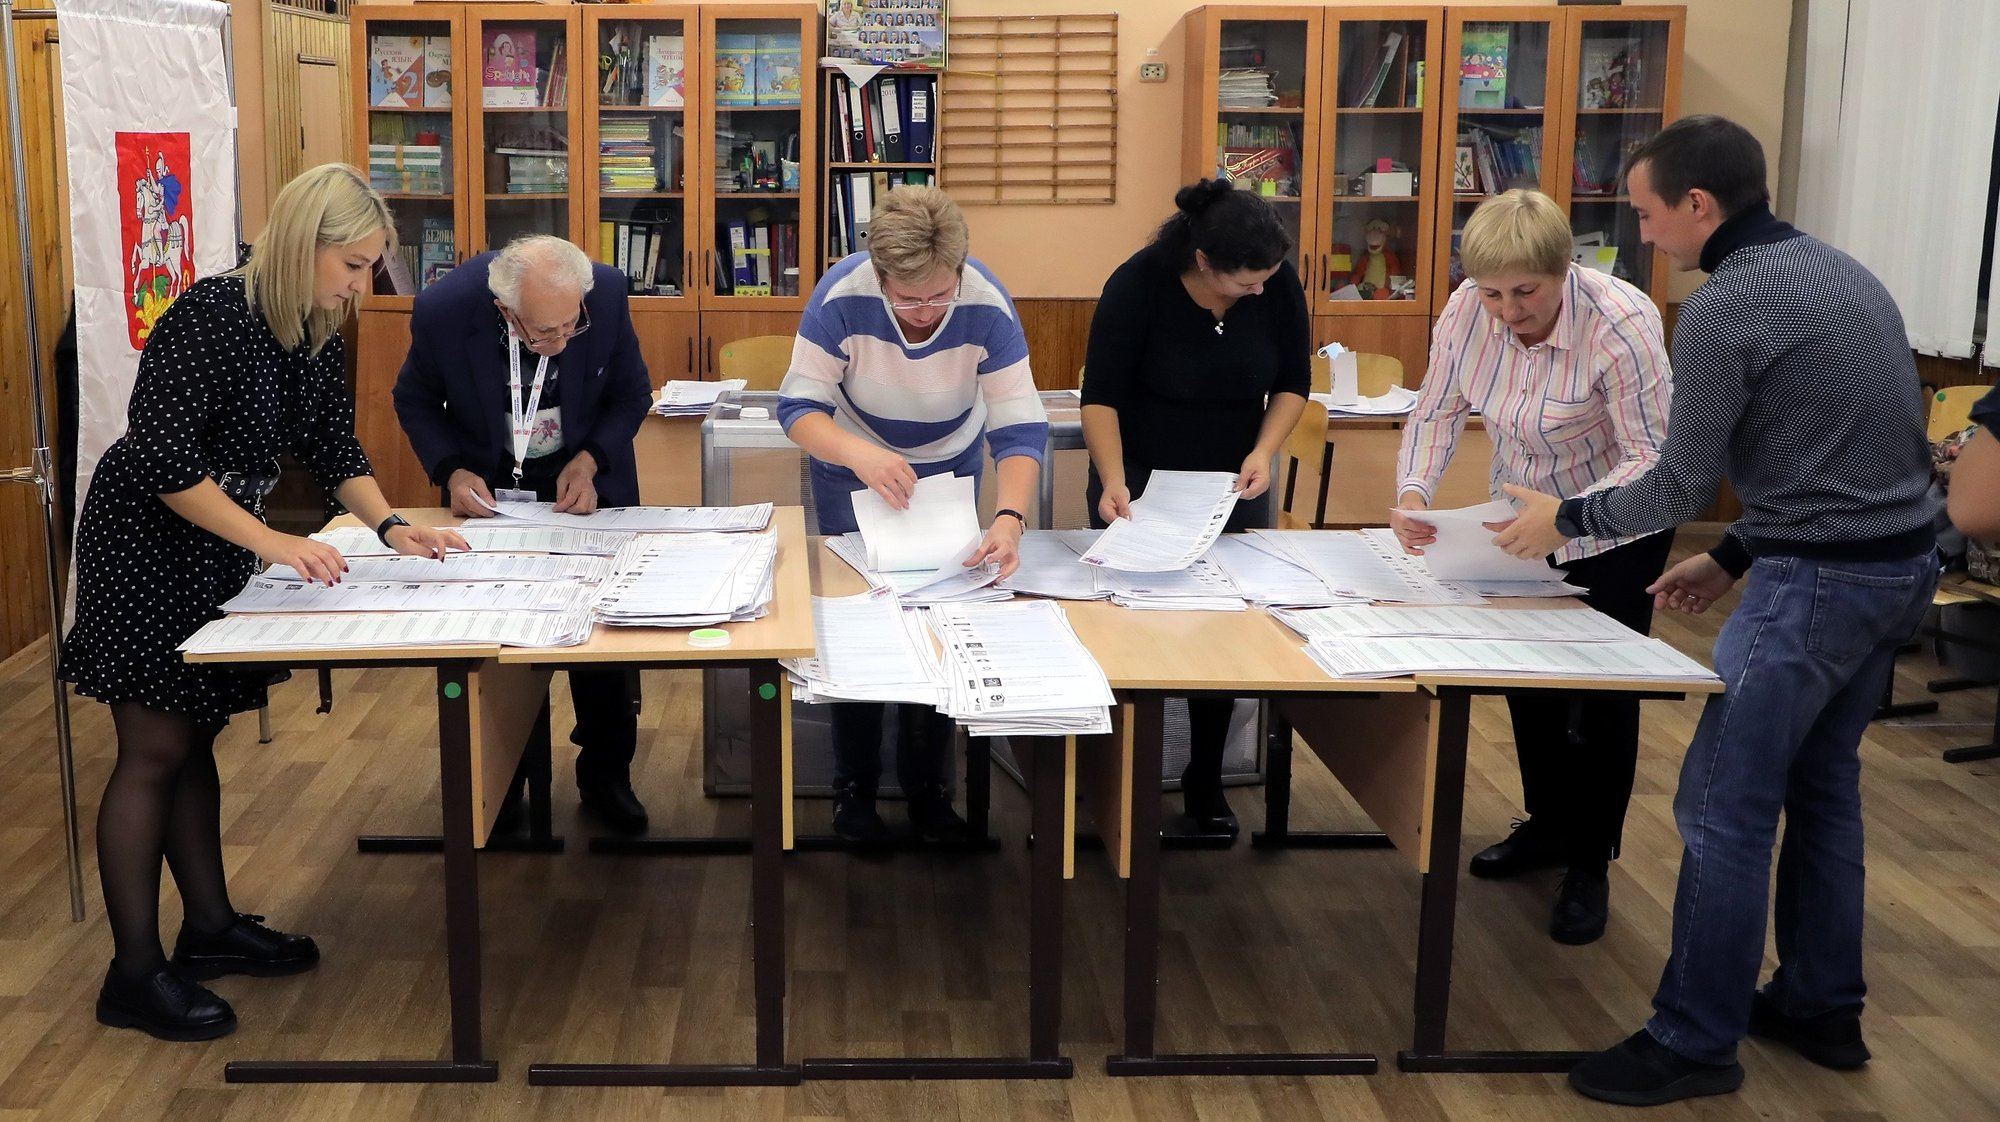 epaselect epa09477072 The members of the local election commission count ballots at a polling station during the Parliamentary elections at a local school in Podolsk outside Moscow, Russia, 19 September 2021. Elections of deputies of the State Duma (Russia's lower house of parliament), governors, deputies of the regional and city runs from 17 September to 19 September. The voting in the State Duma takes place in one round according to a mixed system - 225 deputies must be elected from party lists and 225 deputies - from single-mandate constituencies.  EPA/MAXIM SHIPENKOV